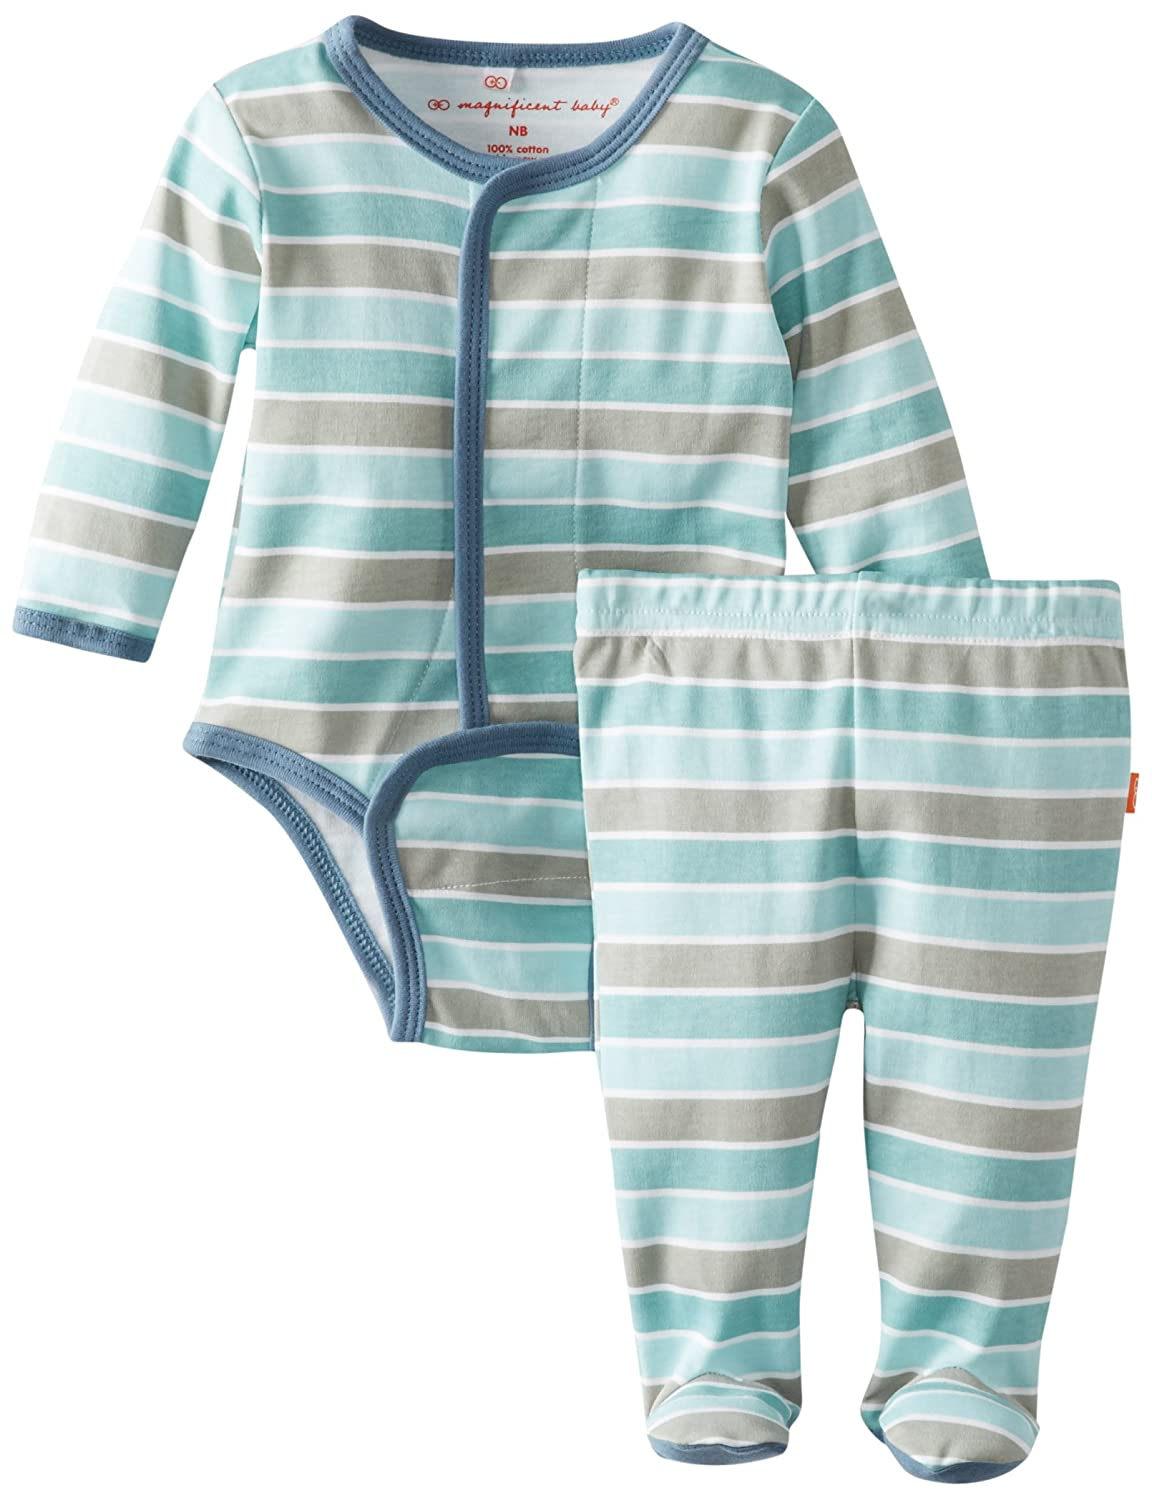 Magnificent Baby Baby-Boys Newborn Long-Sleeve Bodysuit and Pant Set